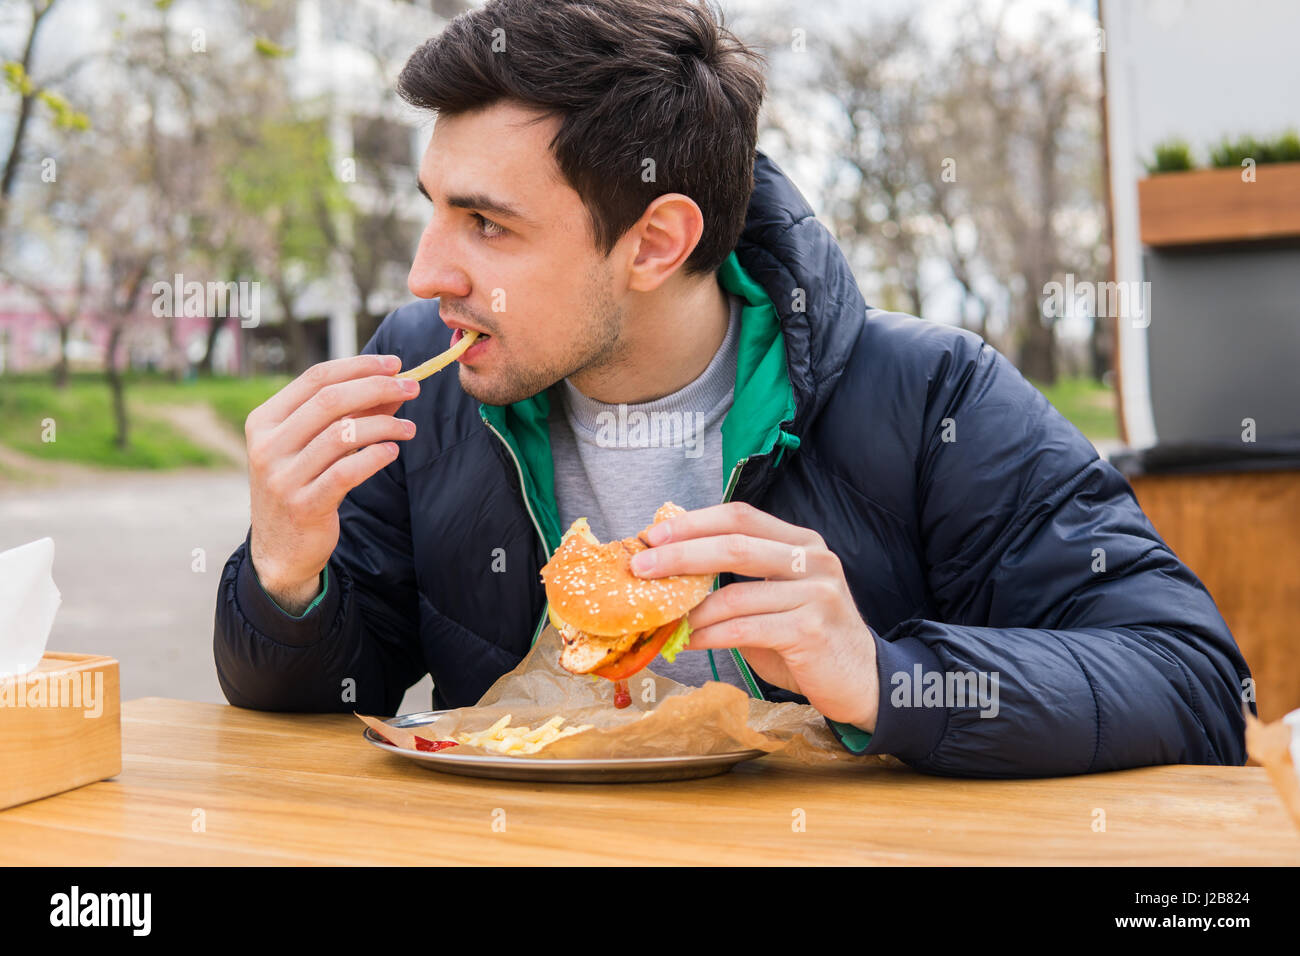 man eating fried potatoes with a burger in street food cafe - Stock Image